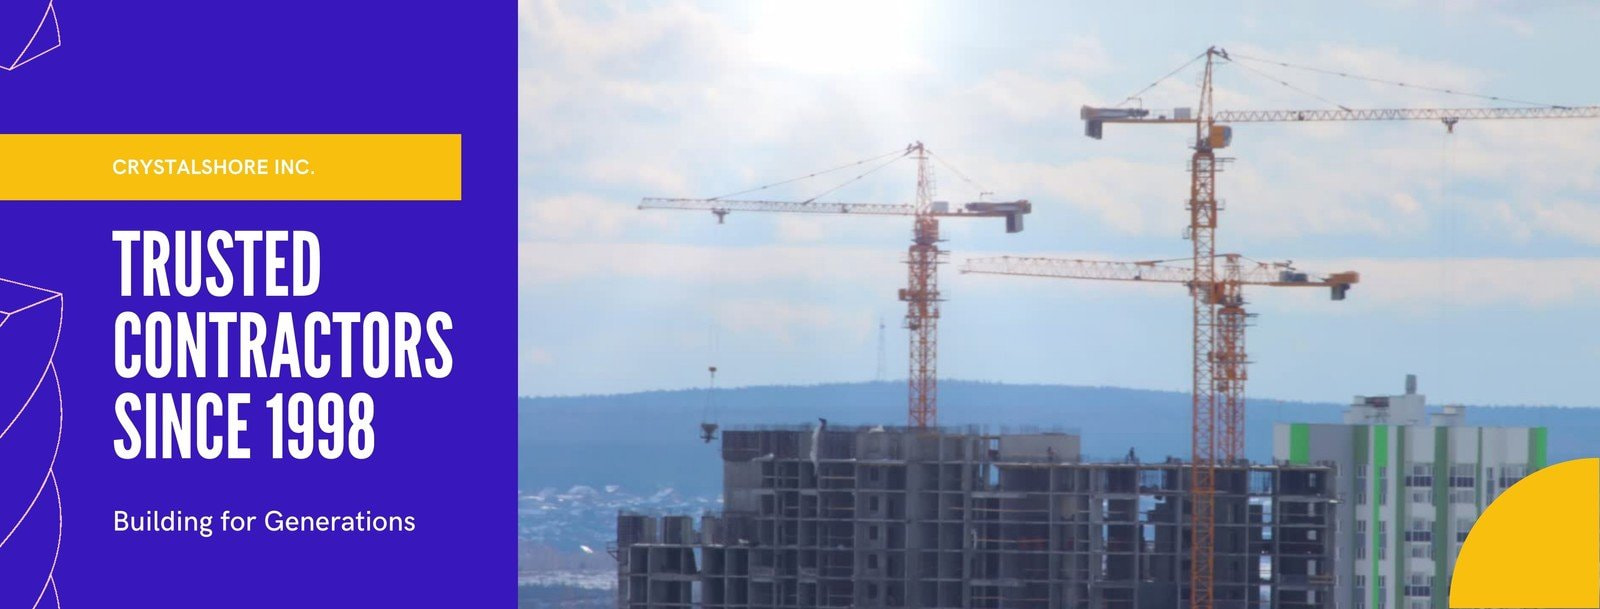 Blue and Yellow Color Block Company / Contractor Construction Facebook Cover